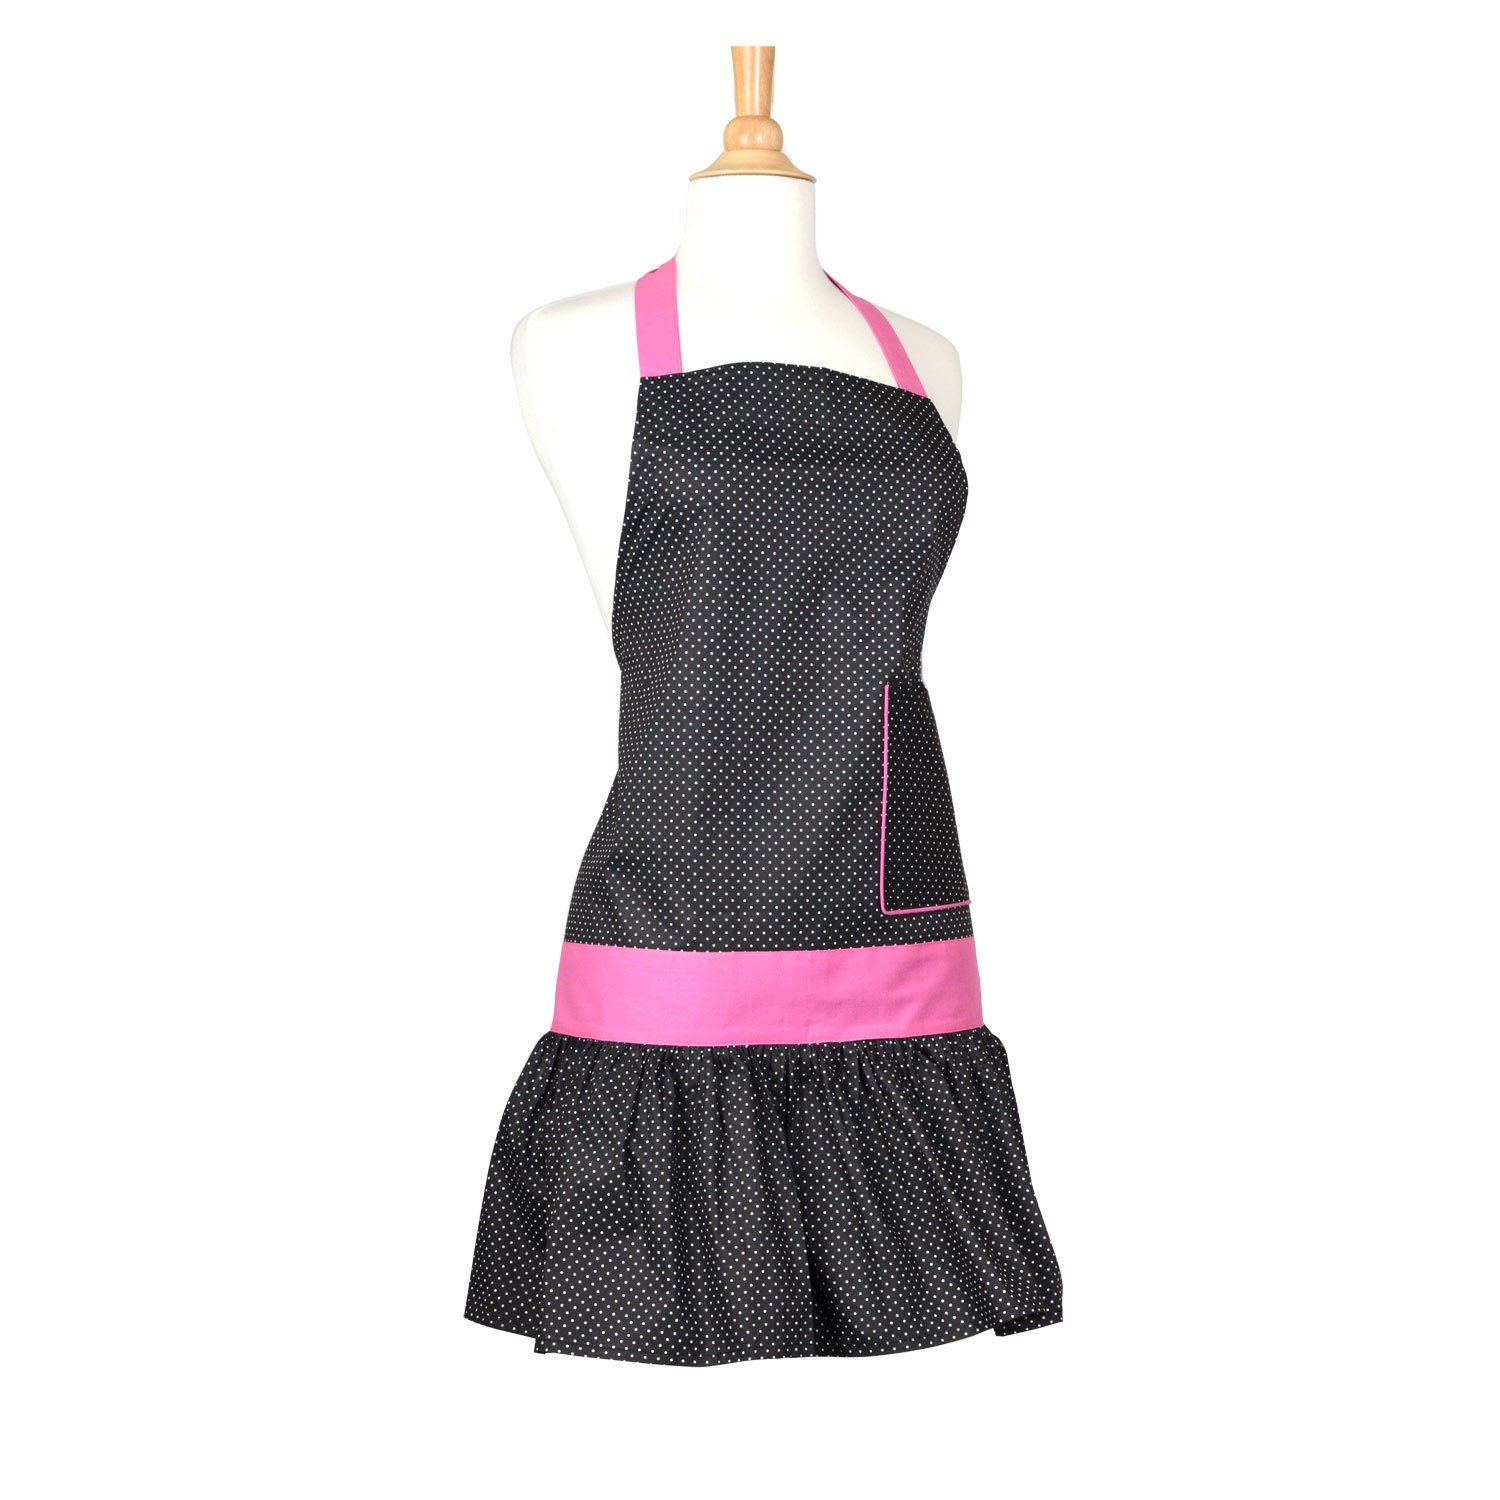 flirty aprons womens Sears has kitchen aprons in different styles and designs protect your clothes from splatters and entertain guests with creative cooking aprons.